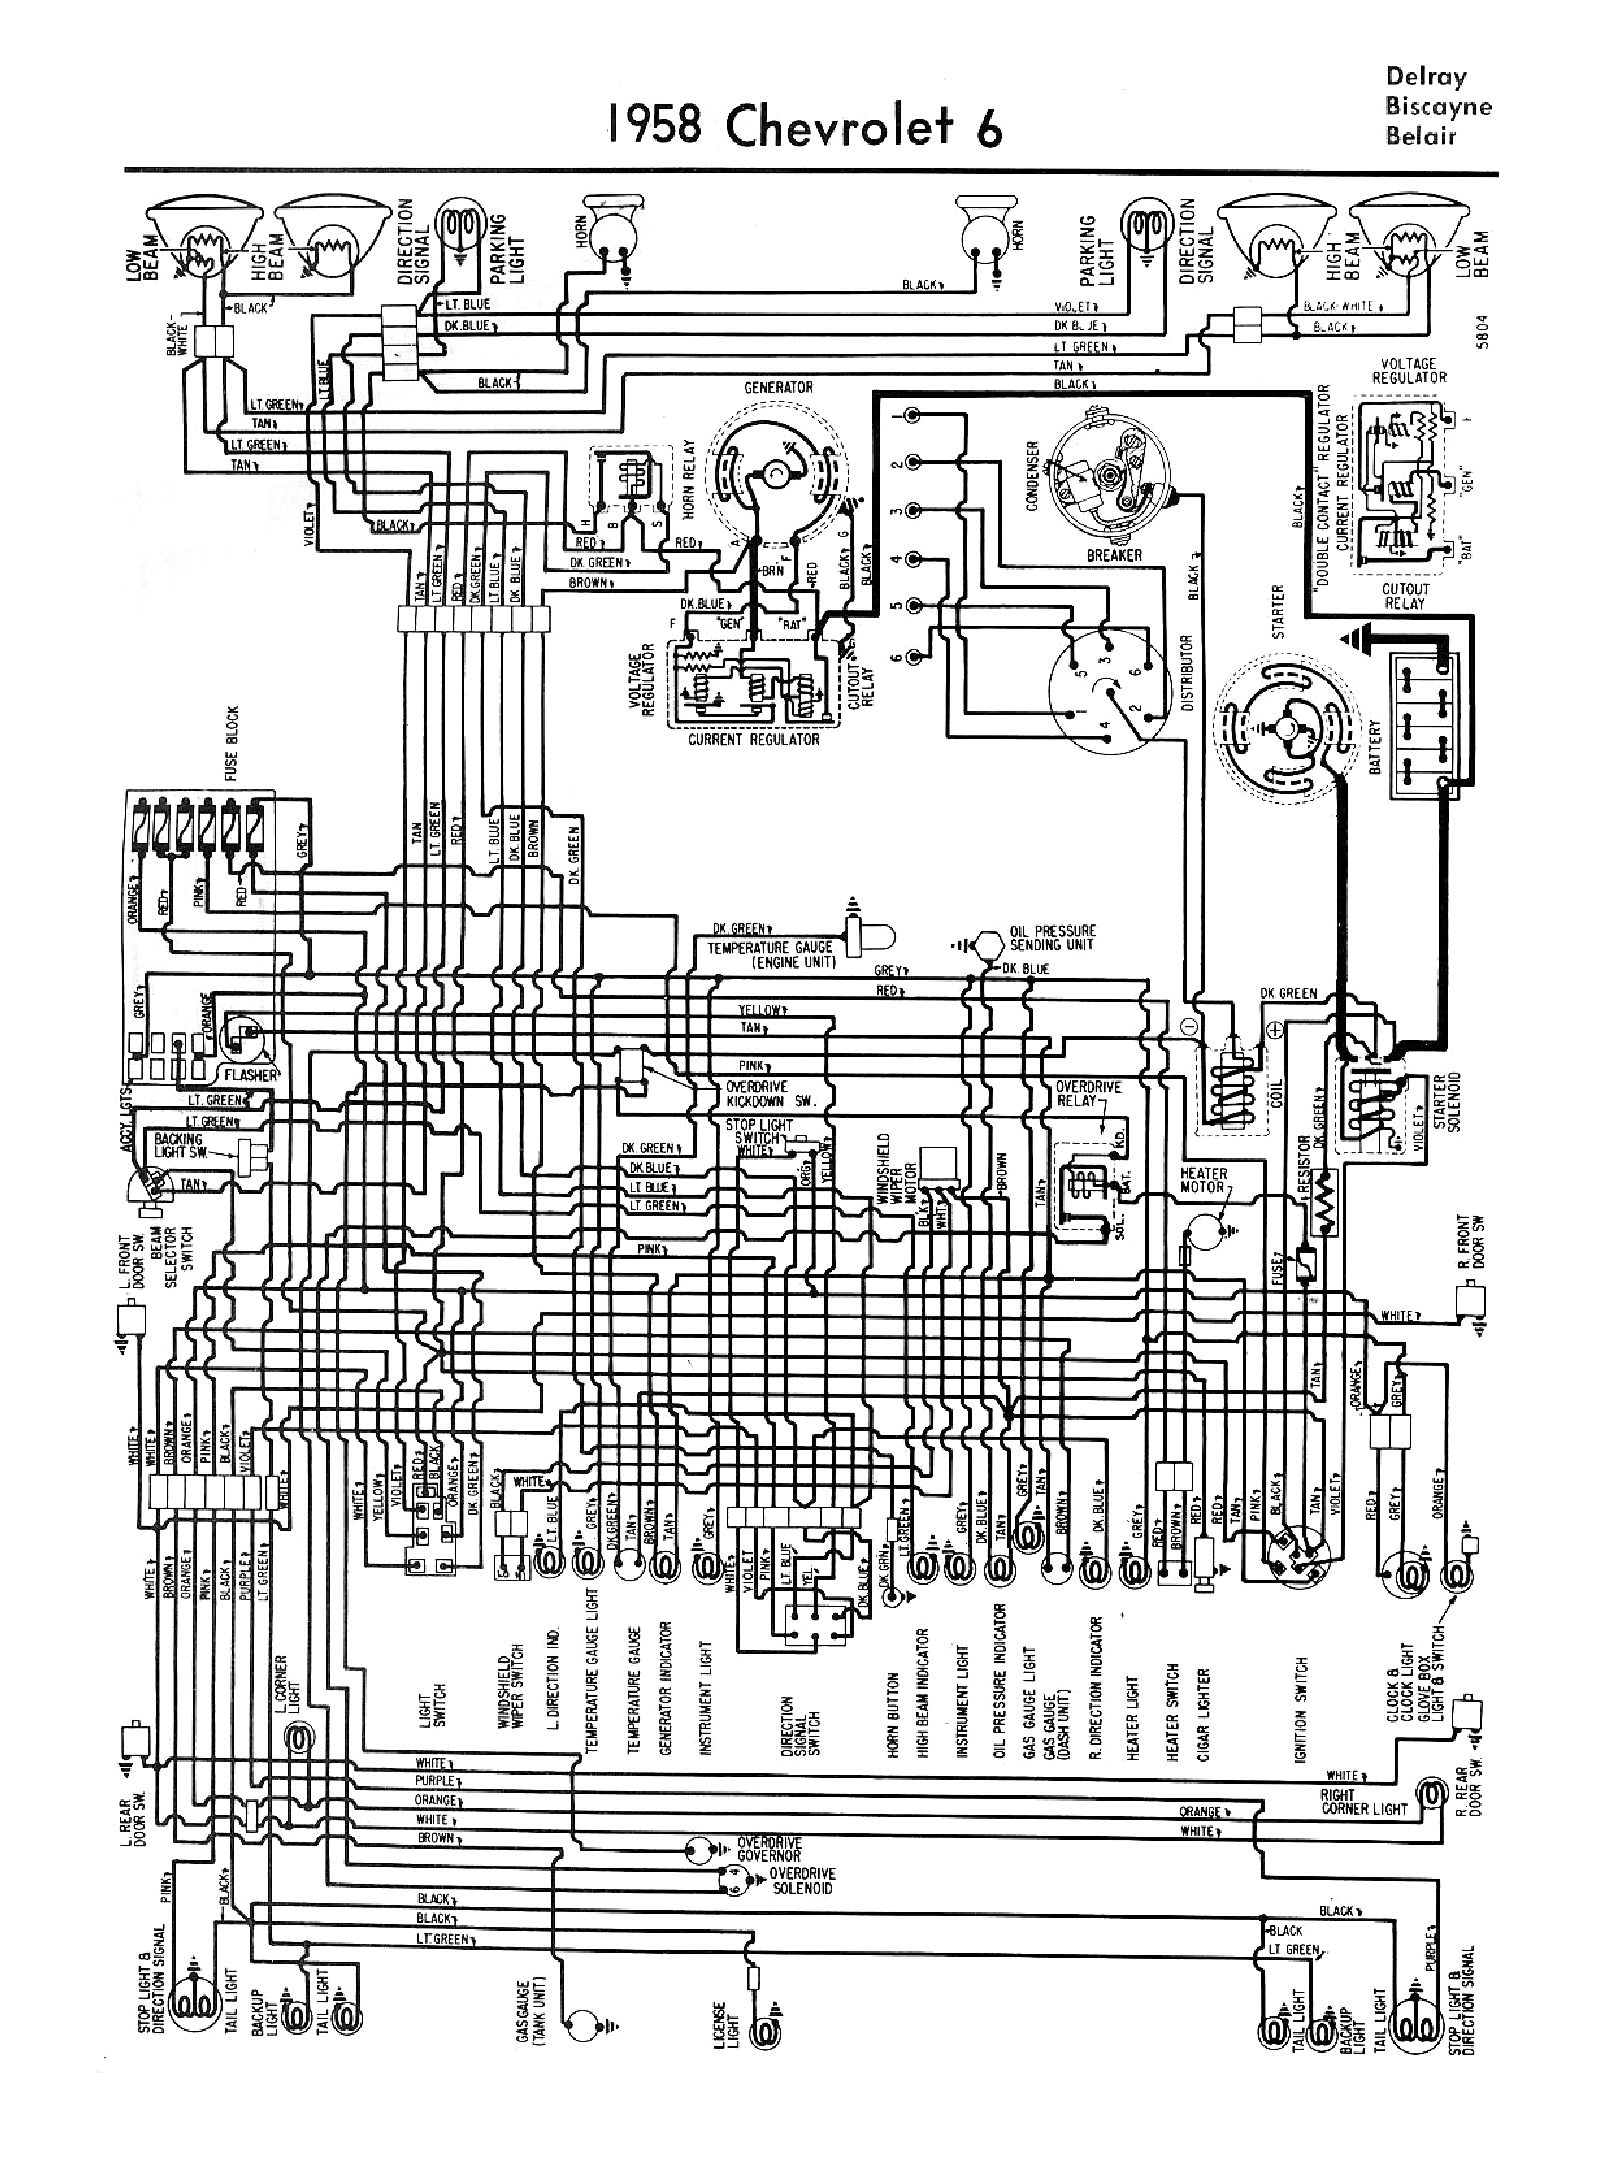 1958 chevy truck wiring diagram